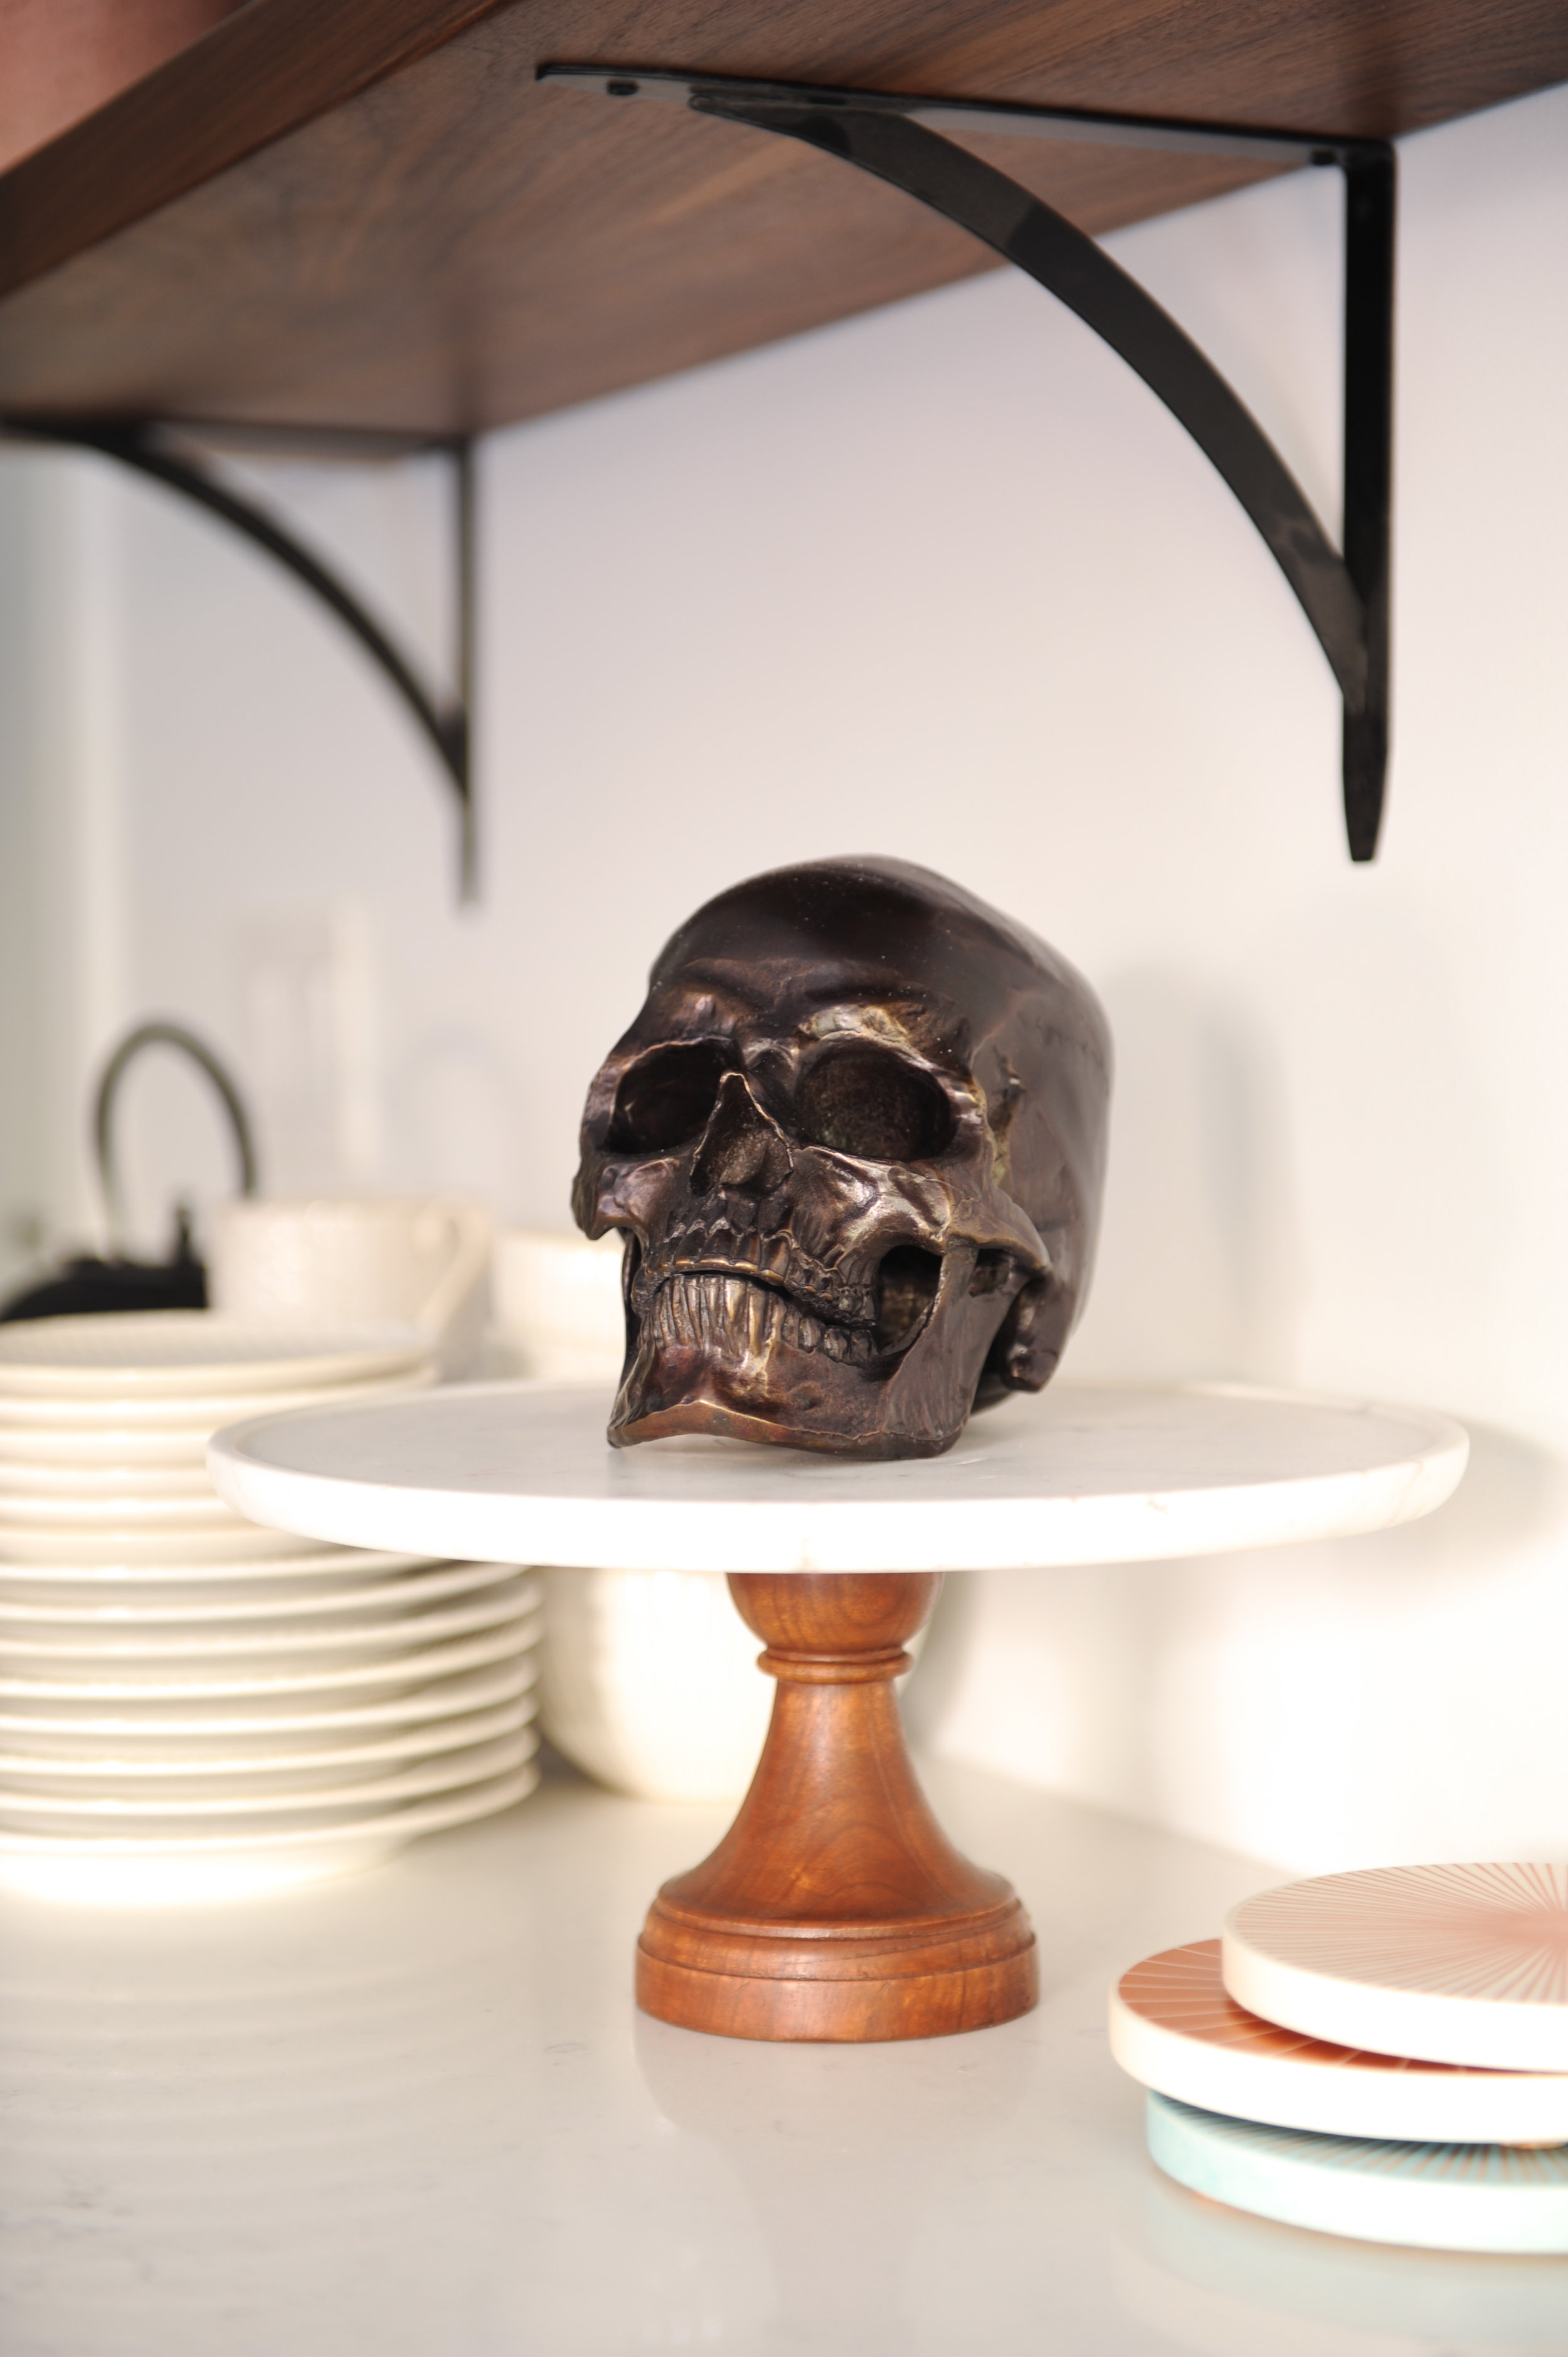 A dark metallic skull sits on a white cake stand with a wooden base.